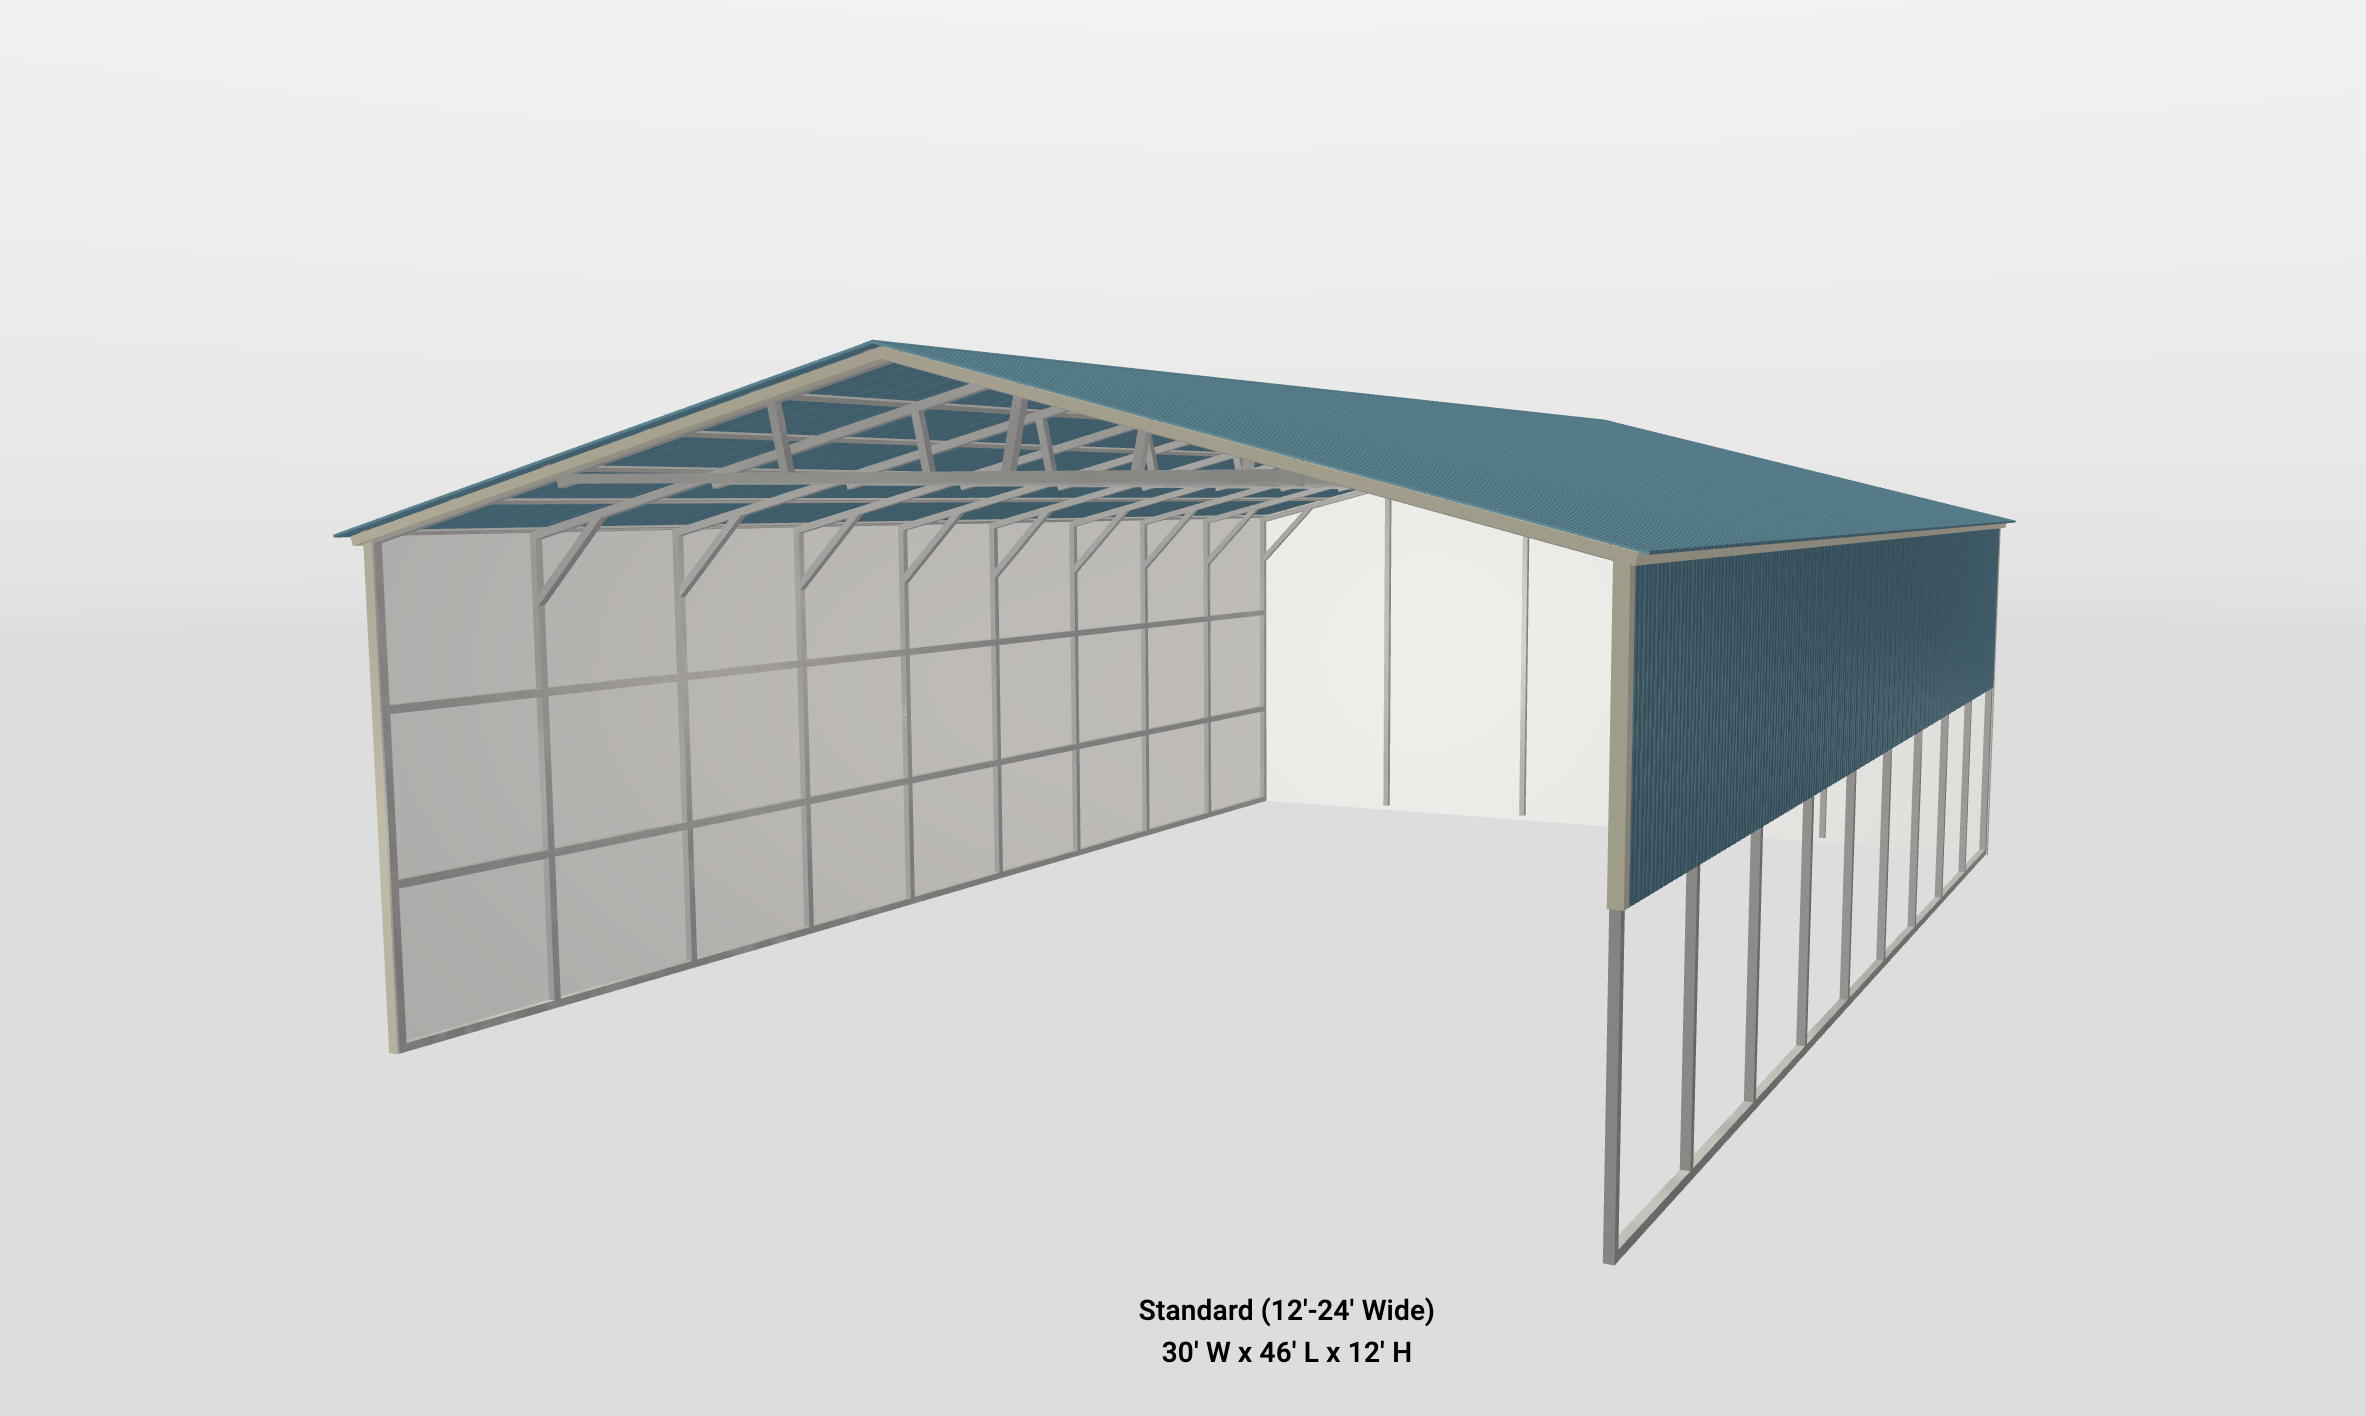 standard metal shelter with blue roof and walls